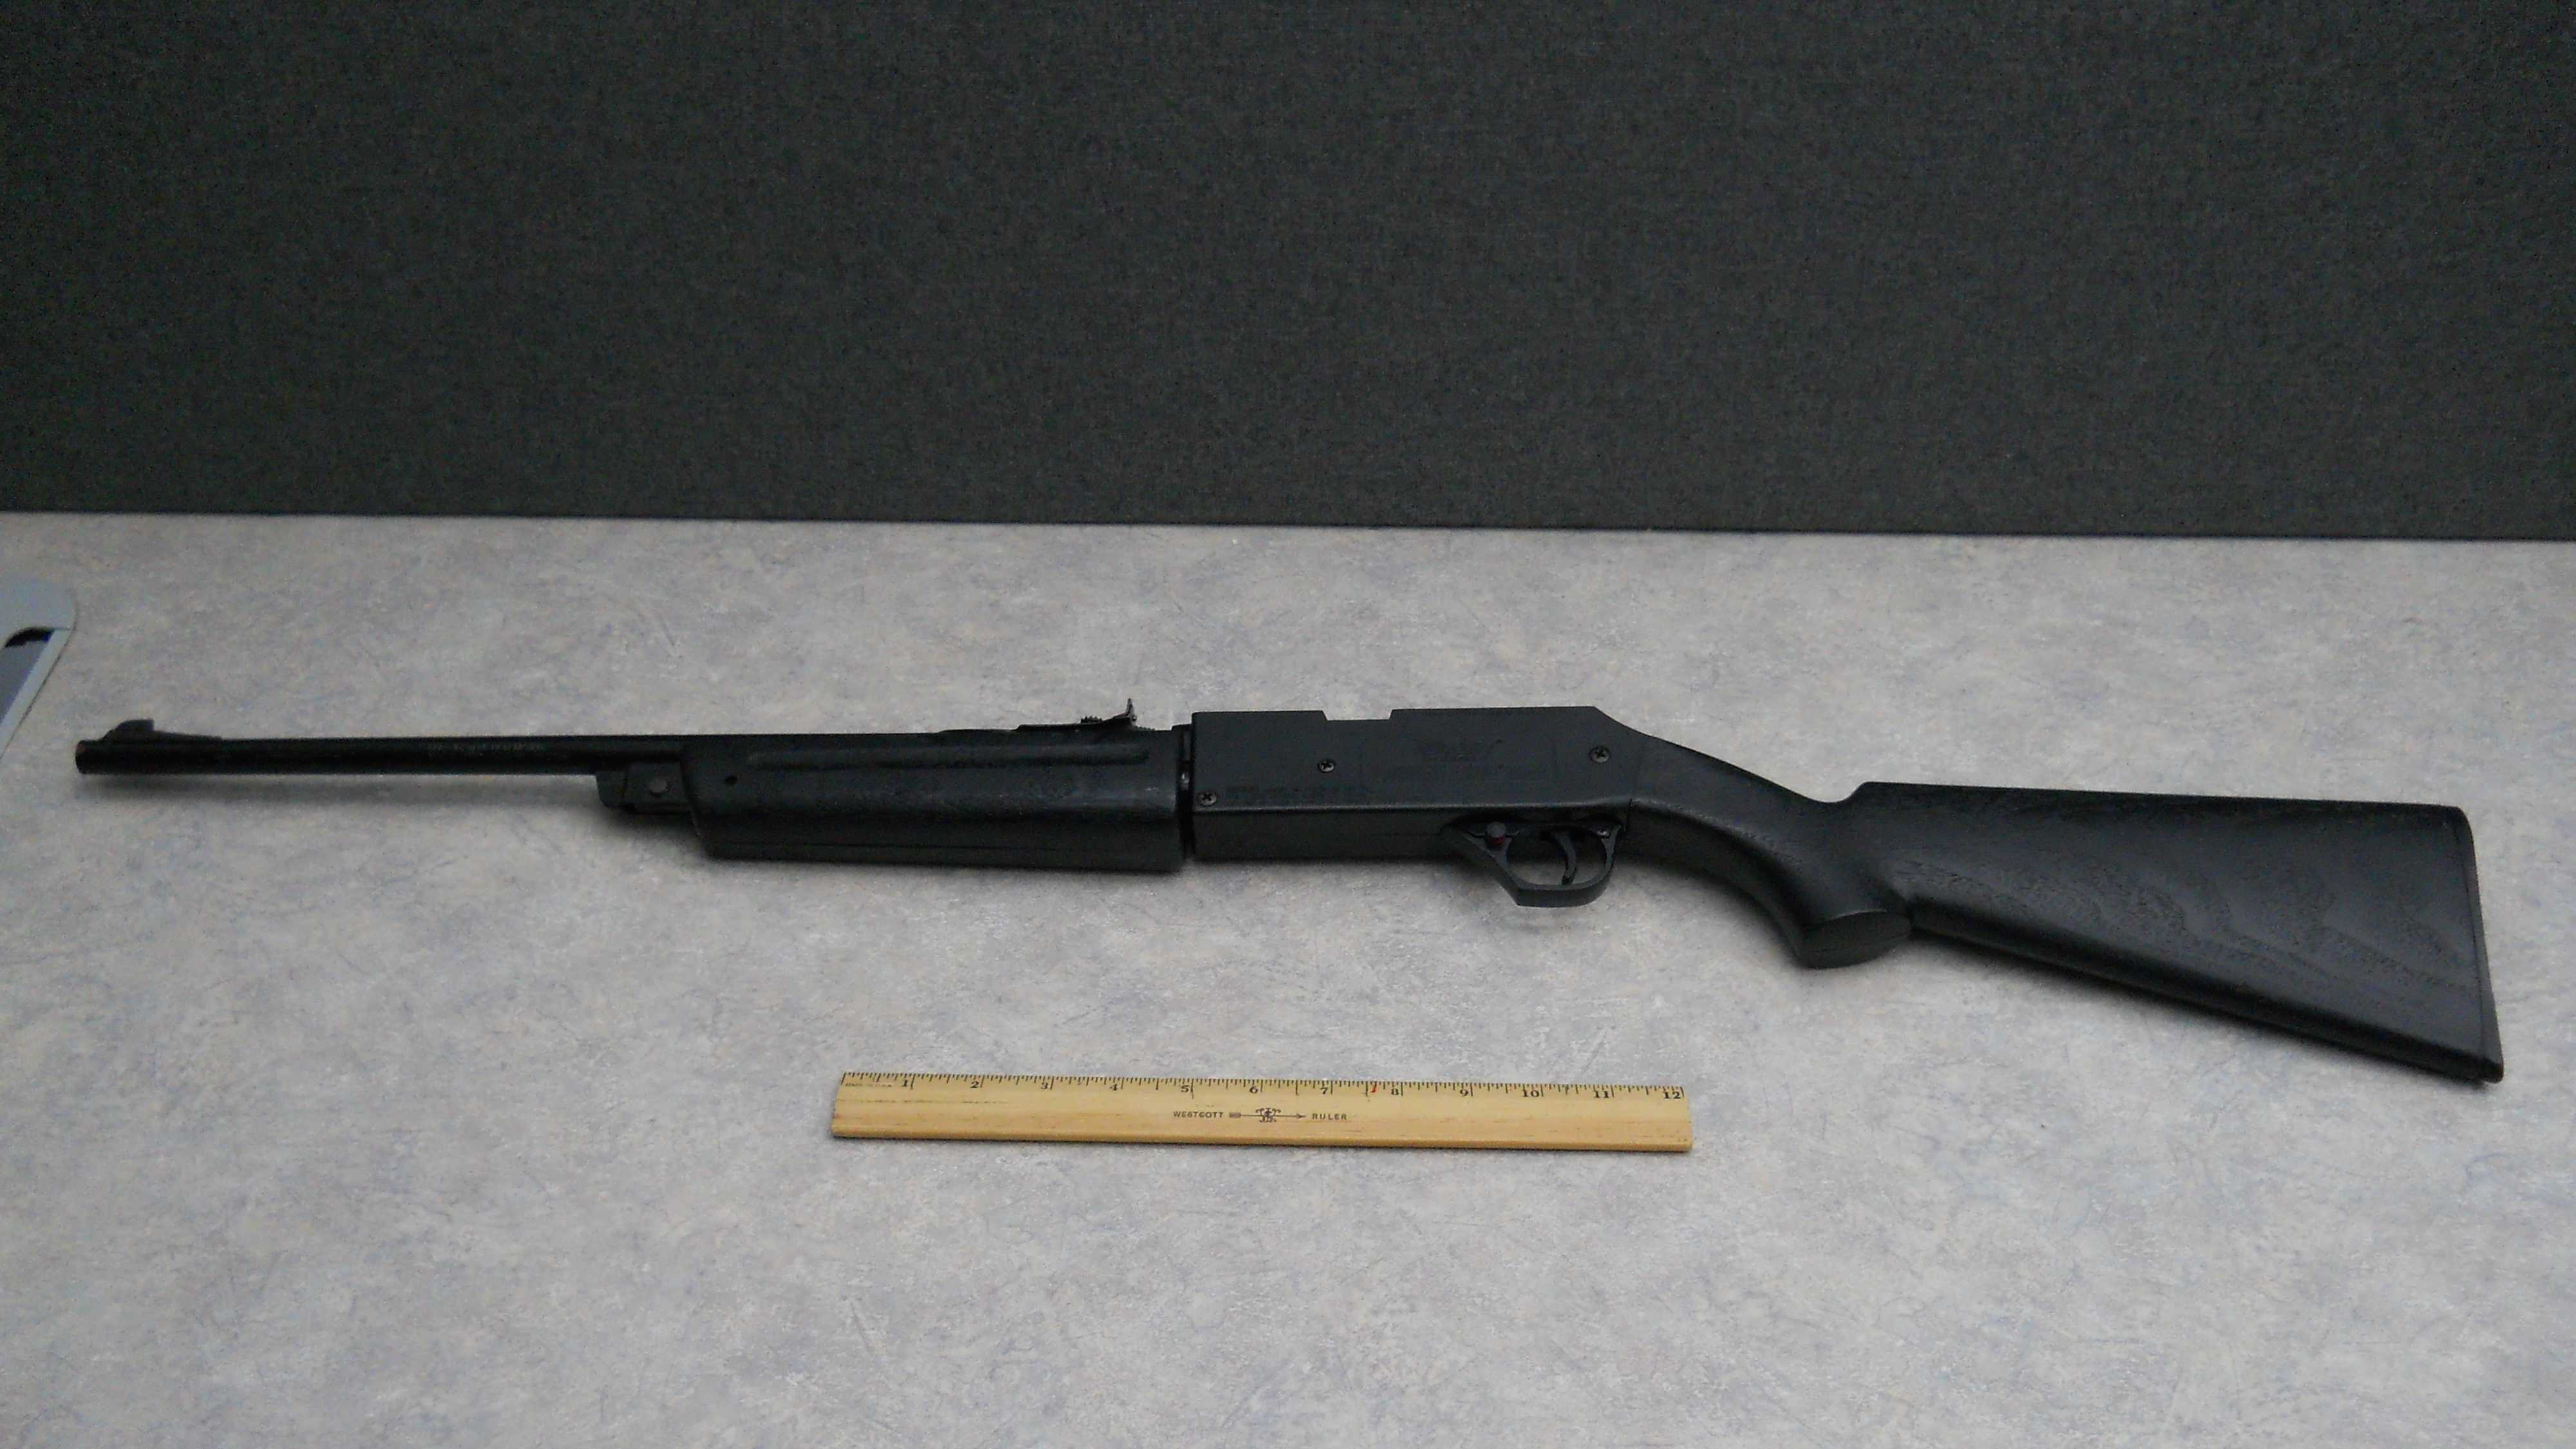 Air rifle found on Concord rooftop